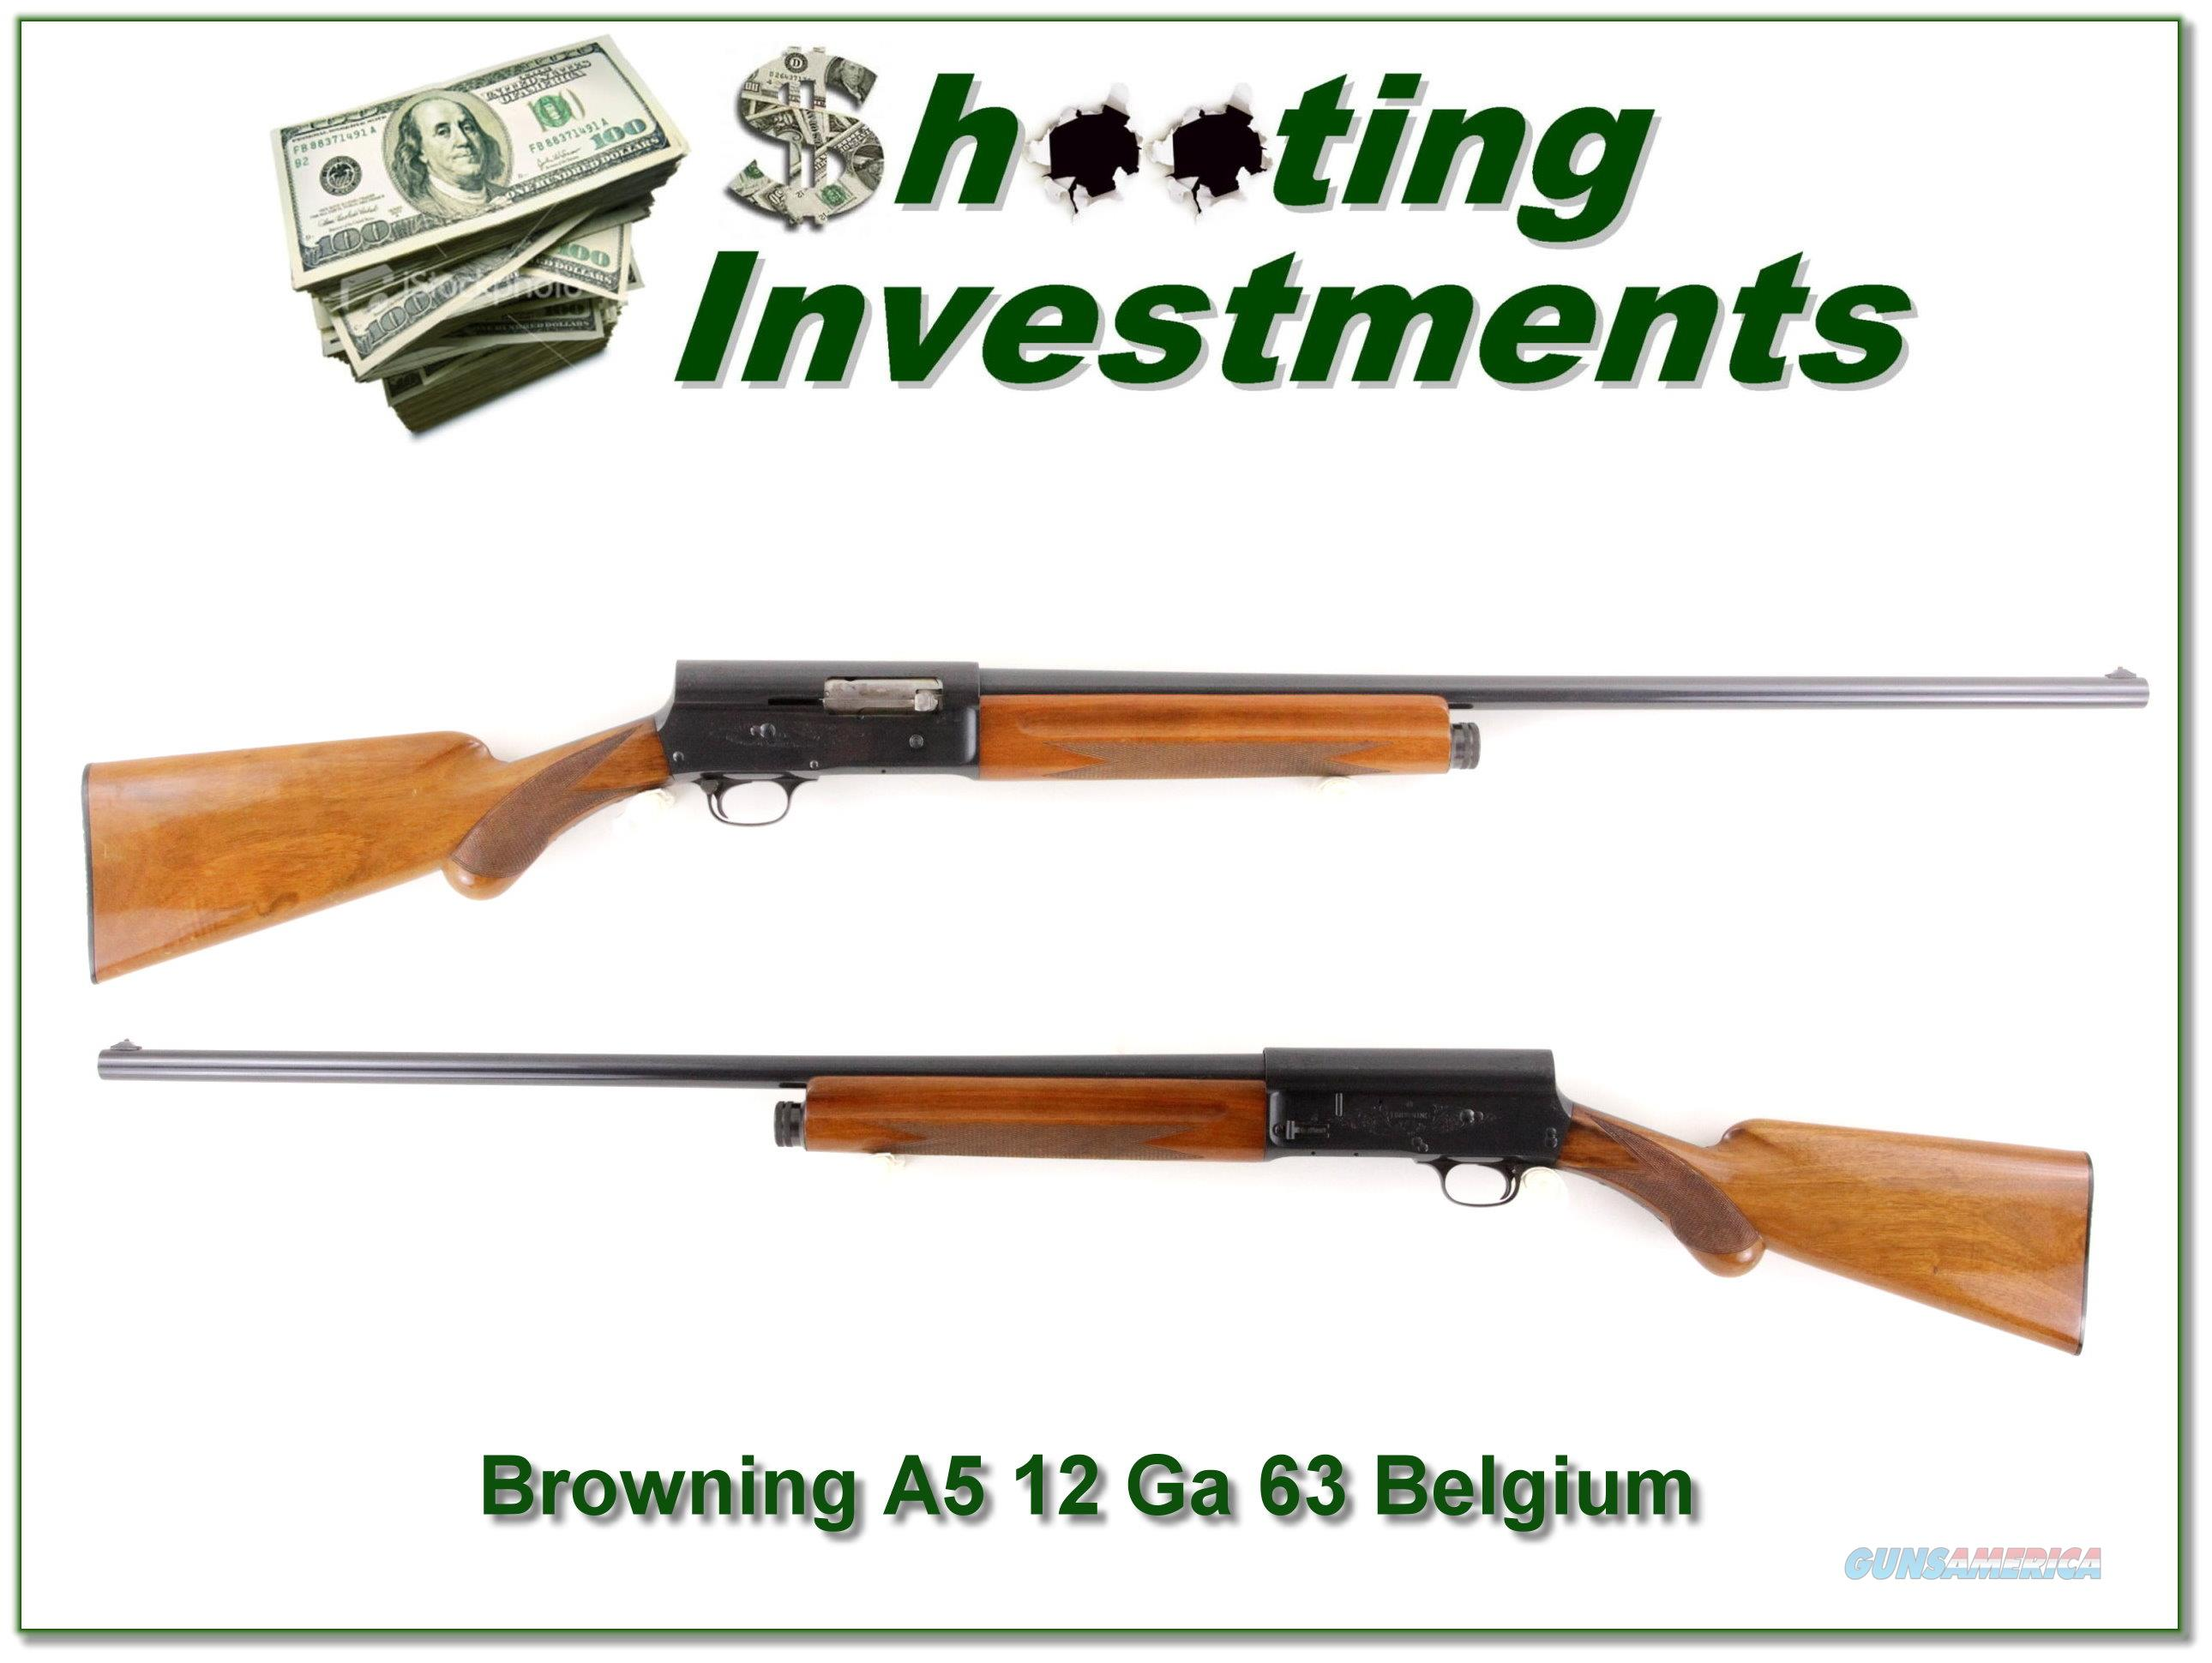 Browning A5 1963 Belgium 12 Ga Blond  Guns > Shotguns > Browning Shotguns > Autoloaders > Hunting